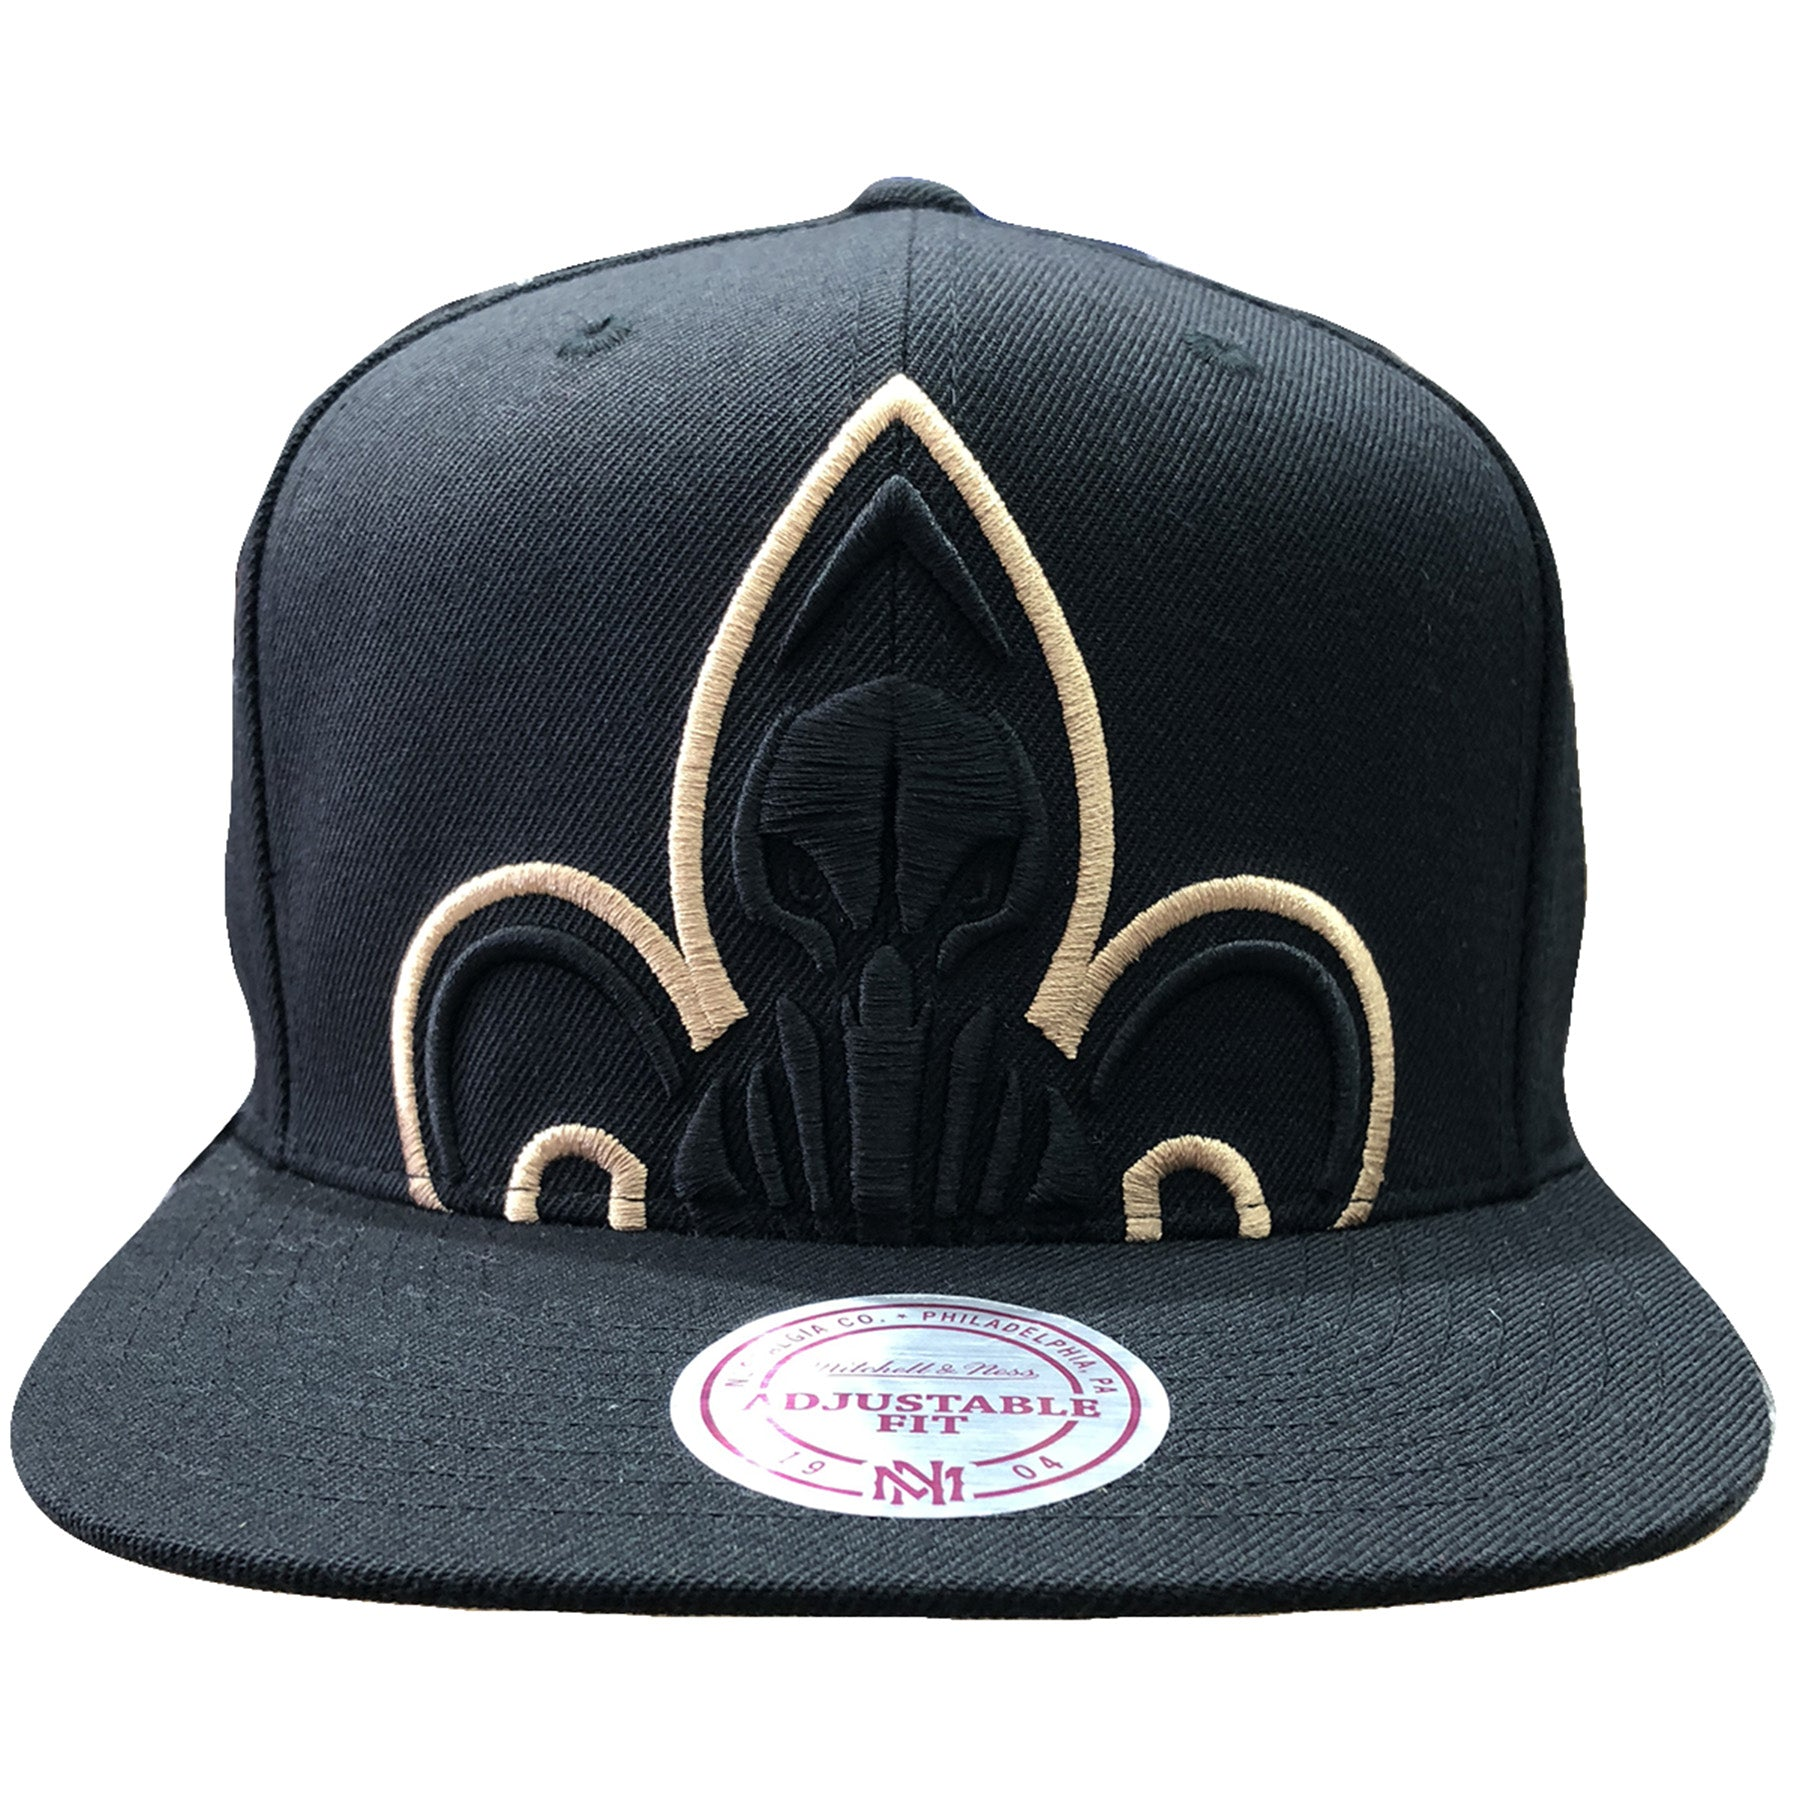 New Orleans Pelicans Xl Logo Black Mitchell And Ness Snapback Hat